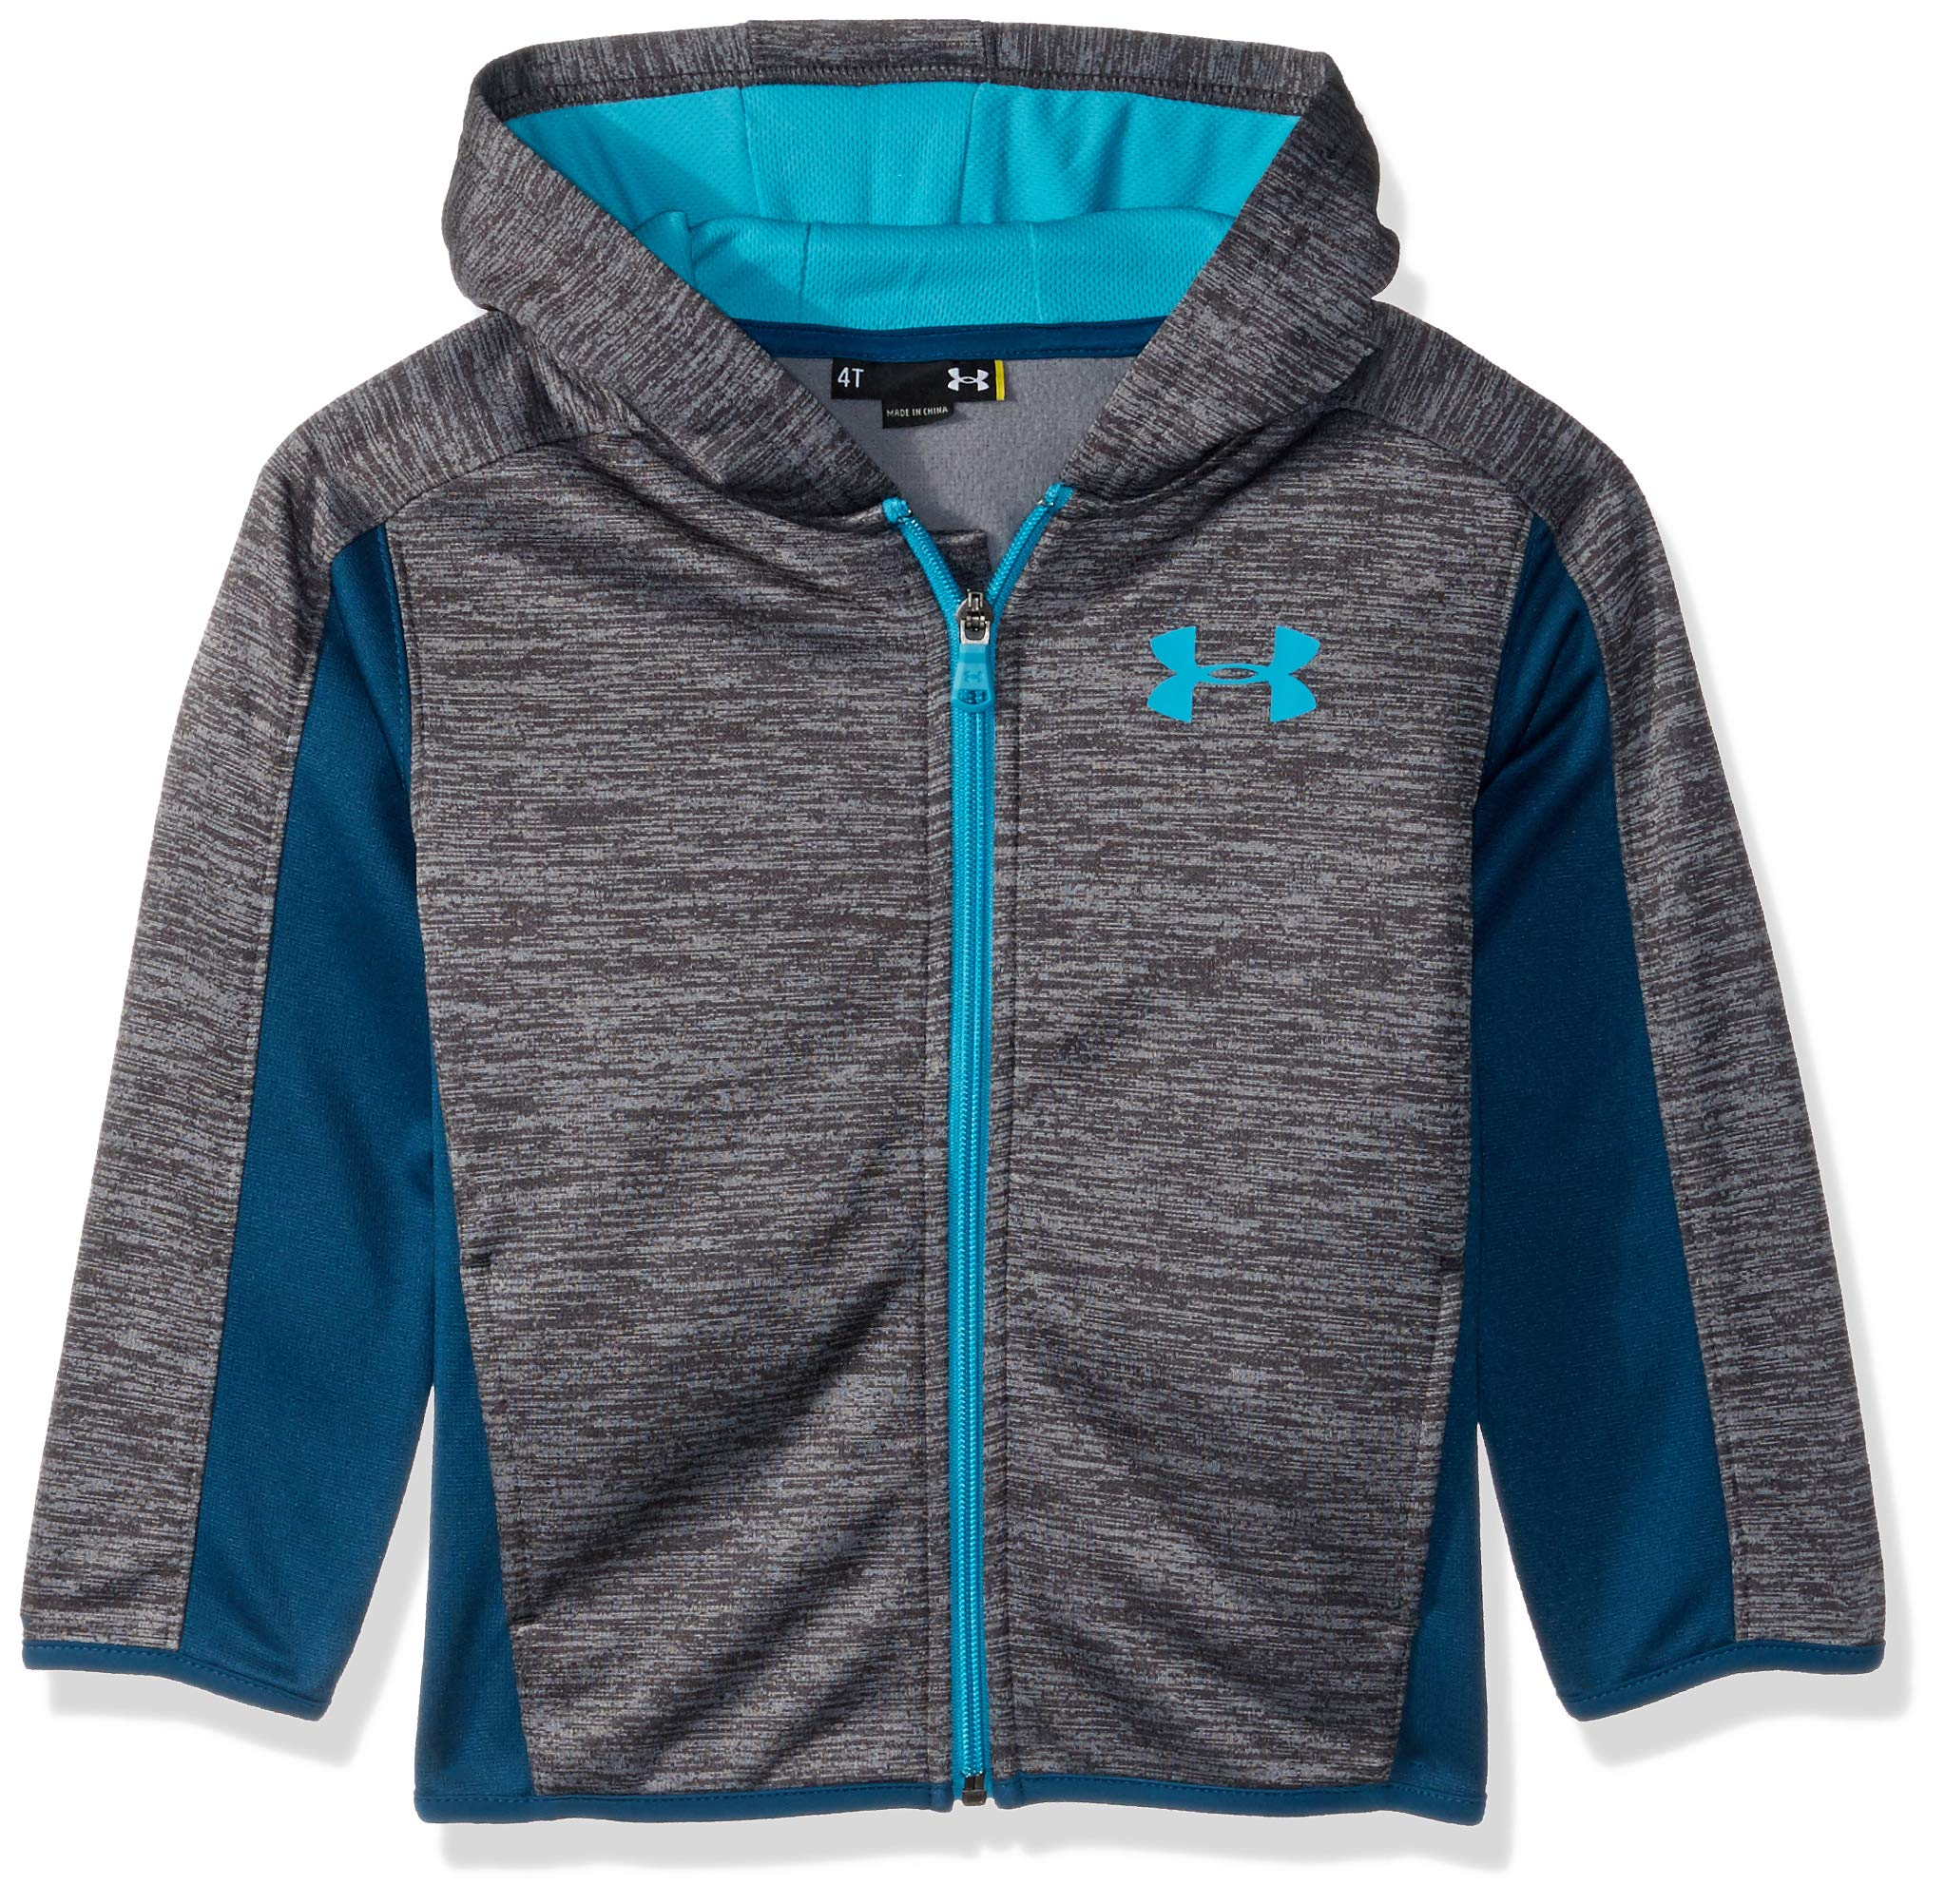 Under Armour Boys' Little Zip Up Hoody, Charcoal Dash 4